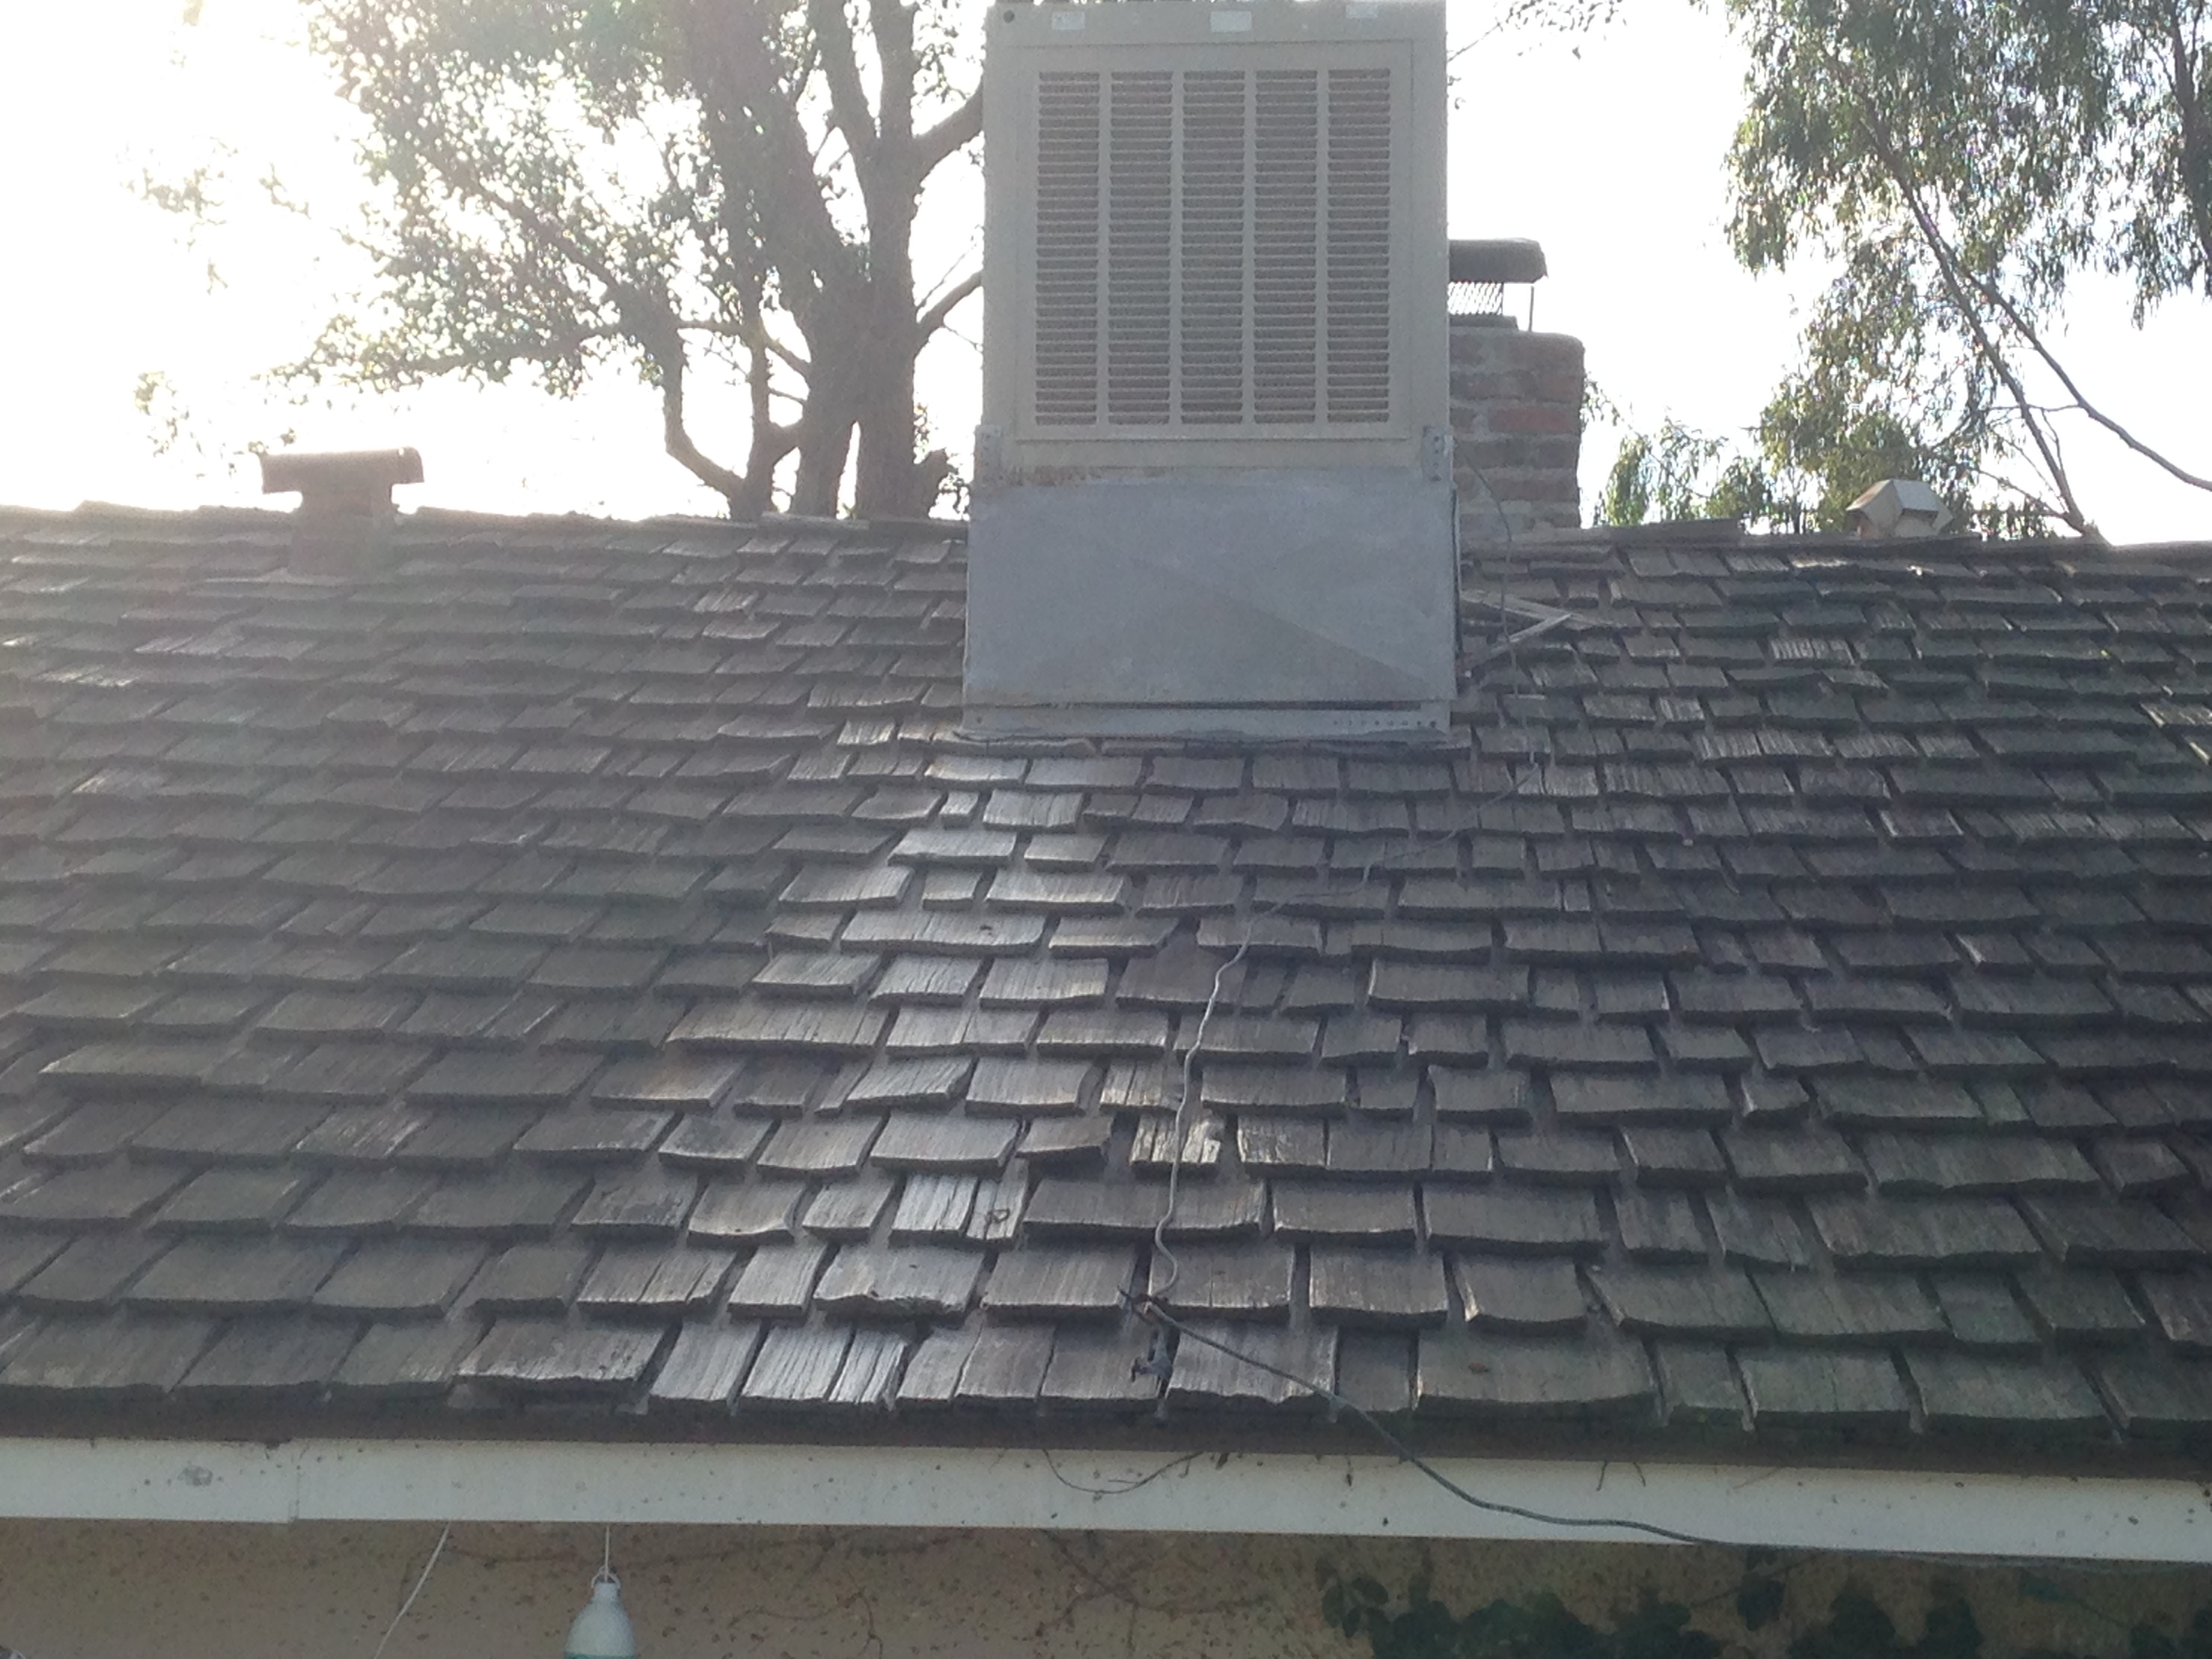 Evaporative Cooling Roof : Swamp cooler leaks creates white residue on the roof